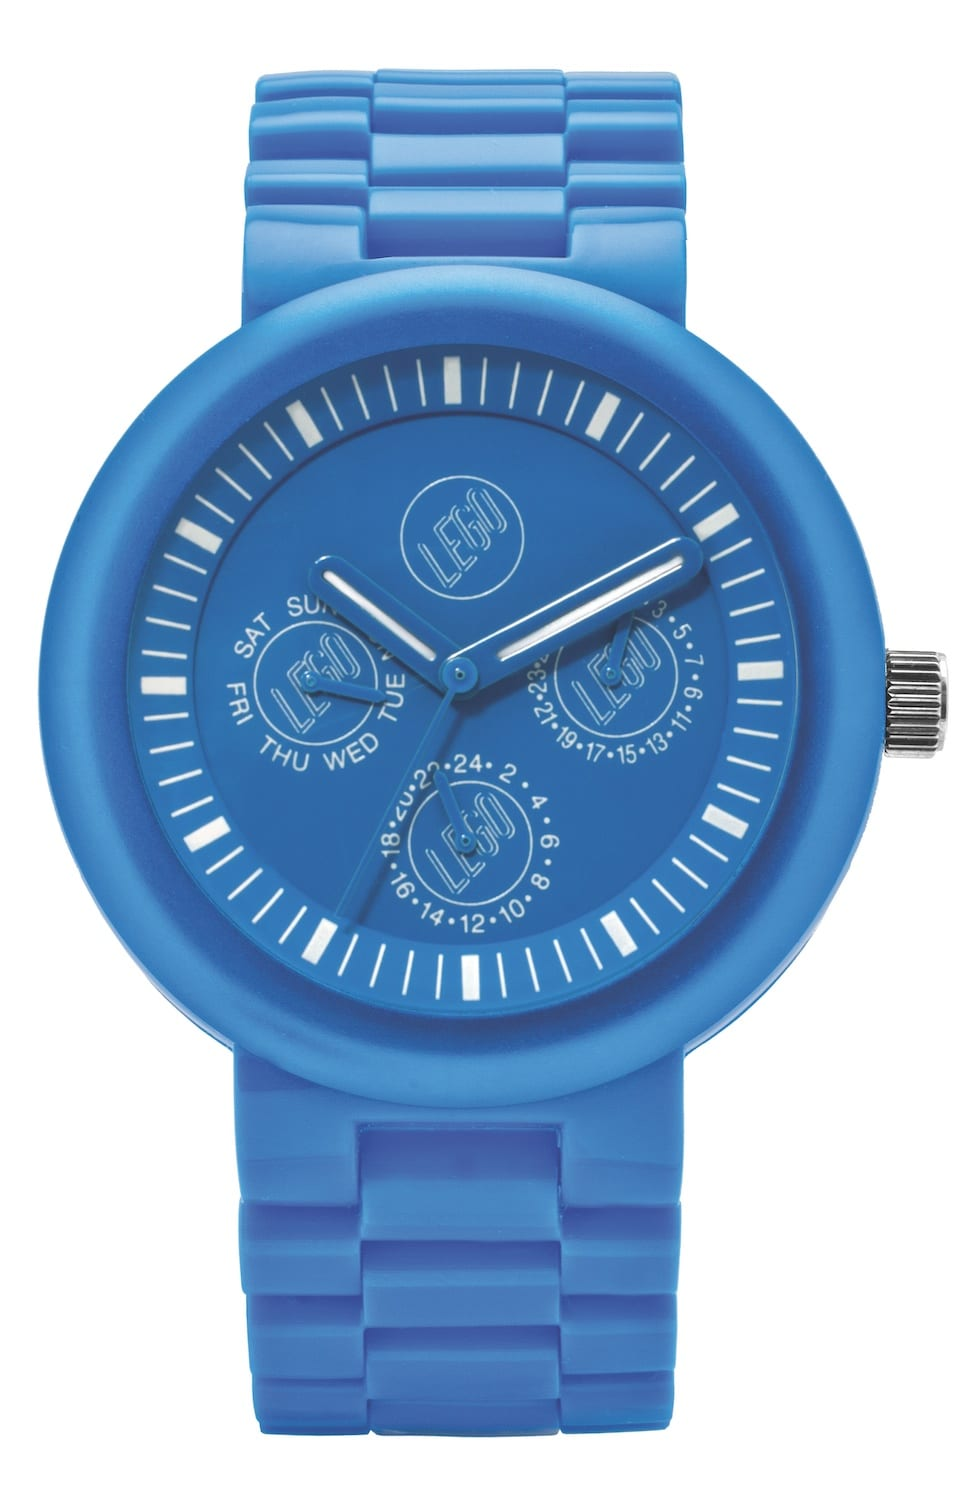 Blue lego The Adult Lego Watch Has Arrived: Review